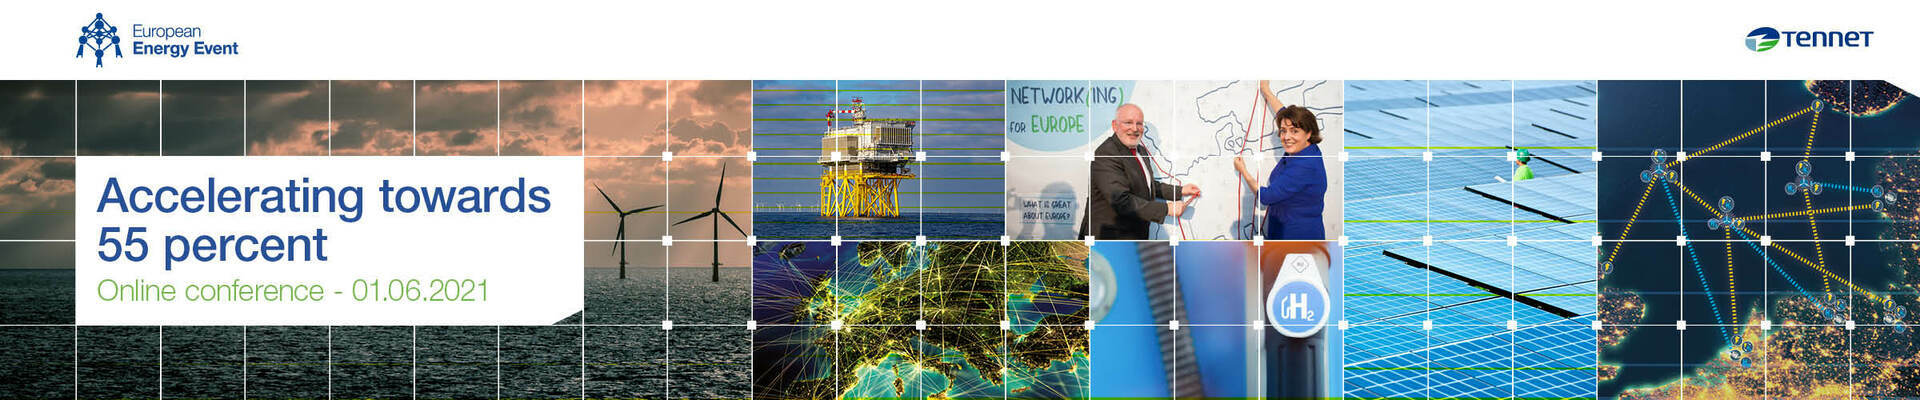 TenneT European Energy Conference 'Accelerating towards 55 percent'